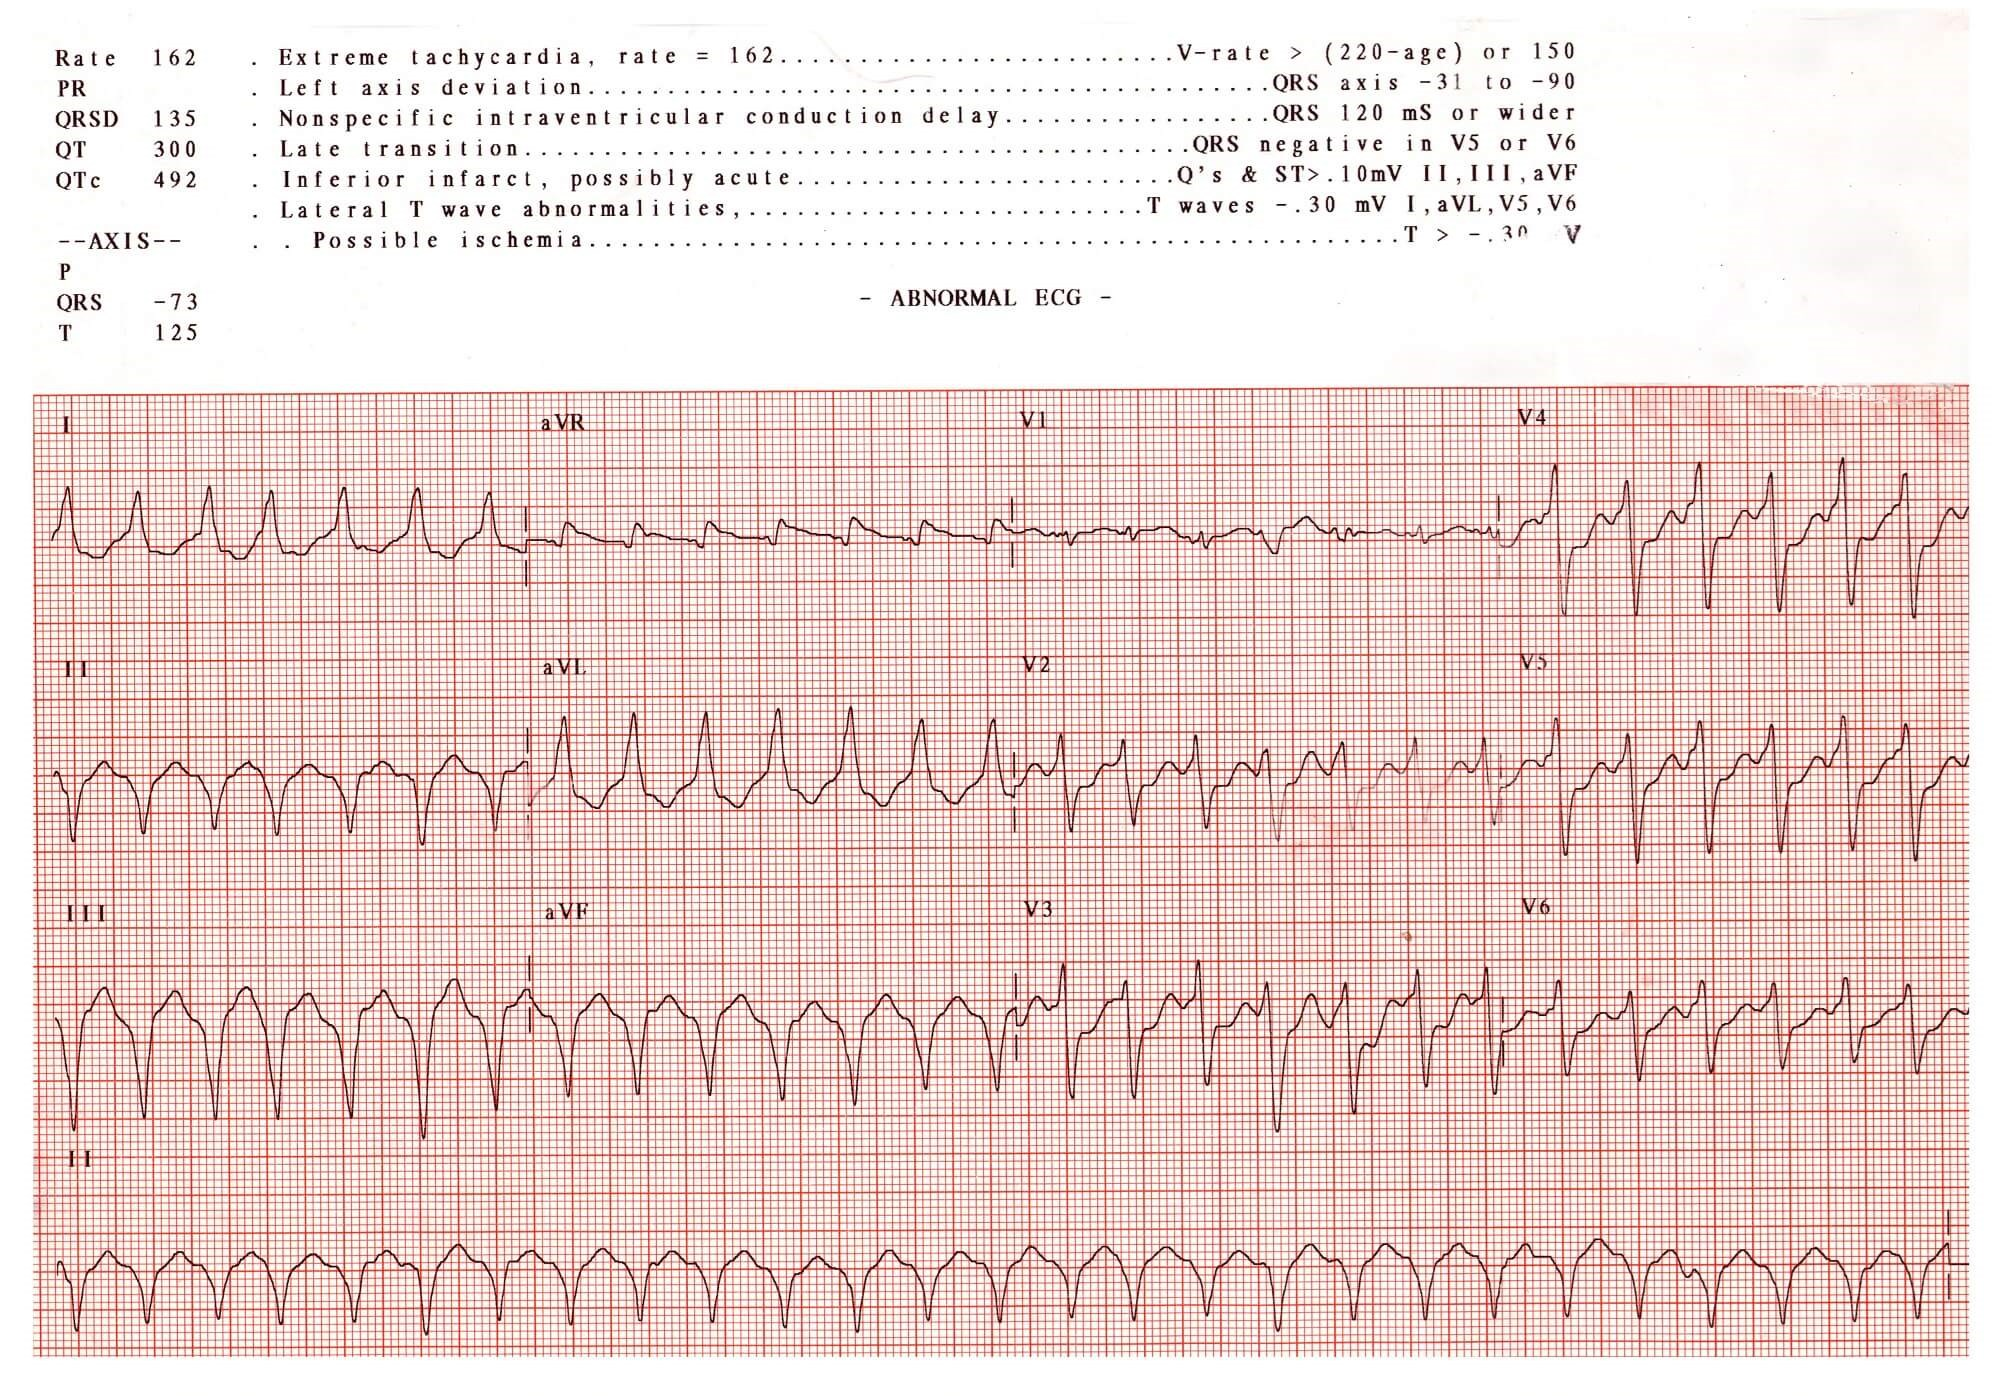 Greater Patient Delays for Women With STEMI Compared With Men